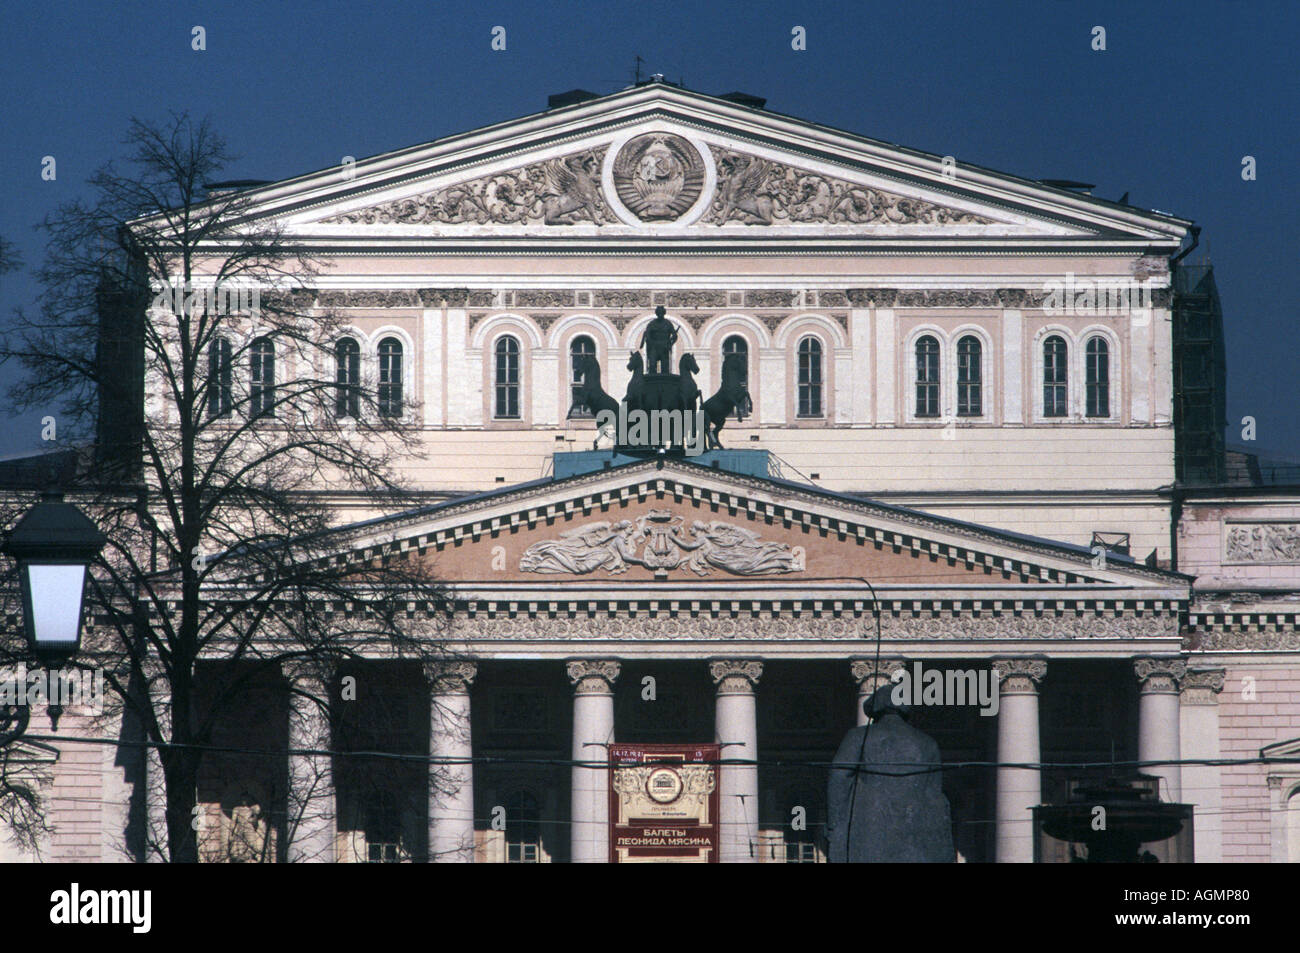 The Bolshoi Theatre in Moscow home of the Bolshoi Ballet - Stock Image